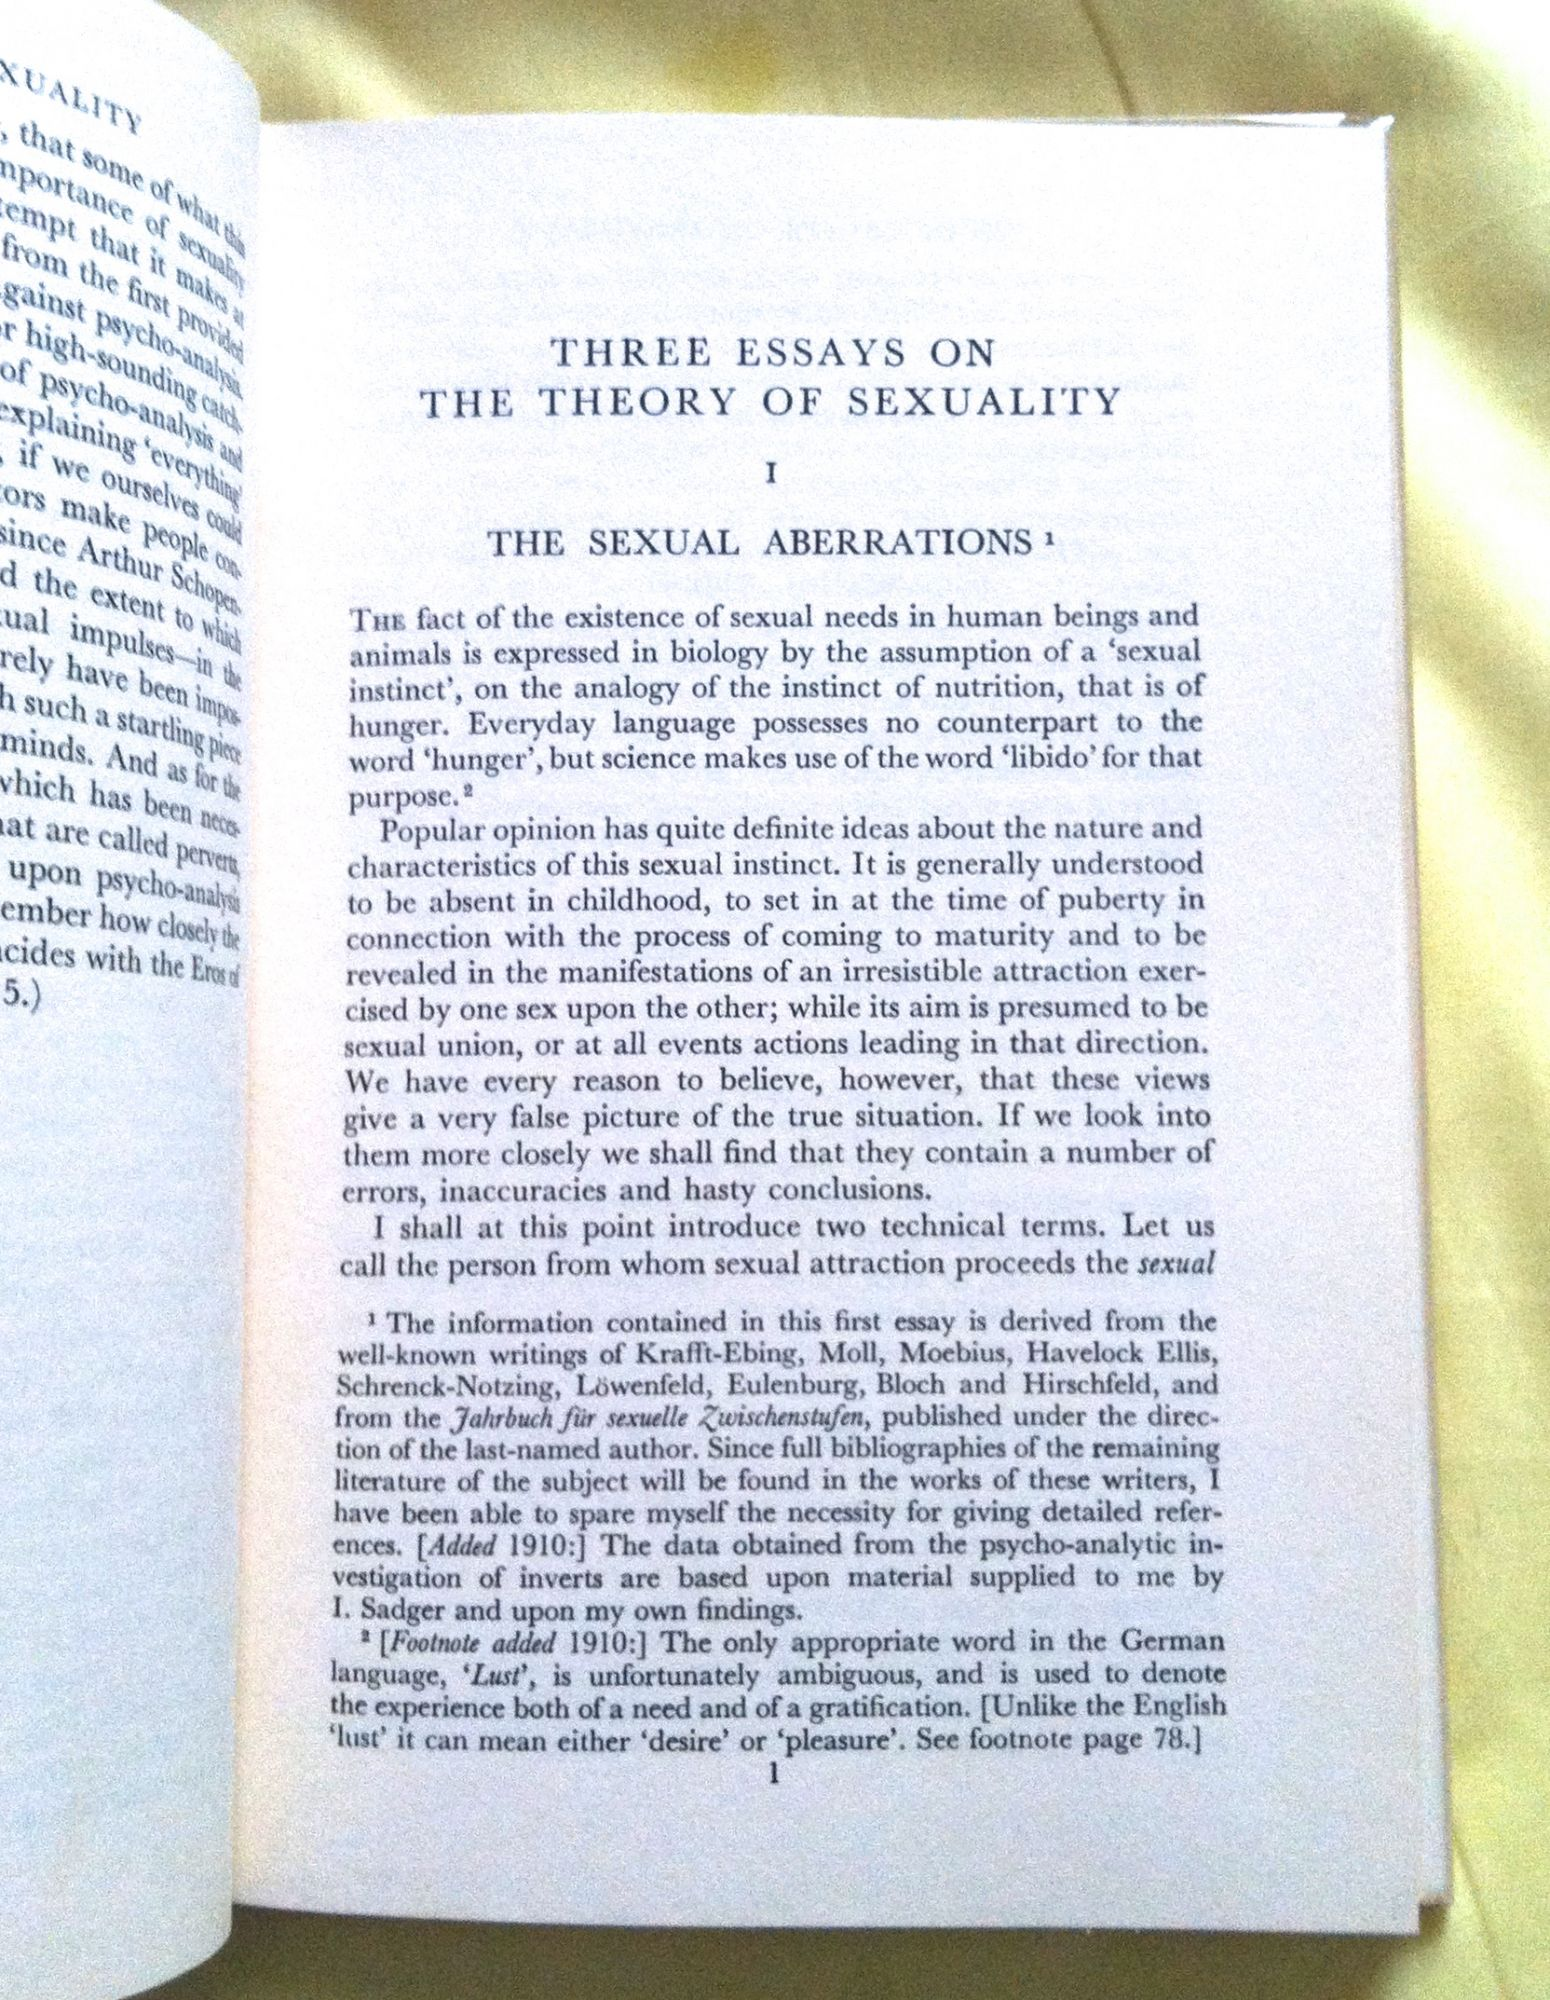 Writing A Proposal Essay Sigmund Freud Three Essays On The Theory Of Sexuality Health Essay Example also What Is The Thesis Of A Research Essay Sigmund Freud Three Essays On The Theory Of Sexuality  James  Healthy Diet Essay